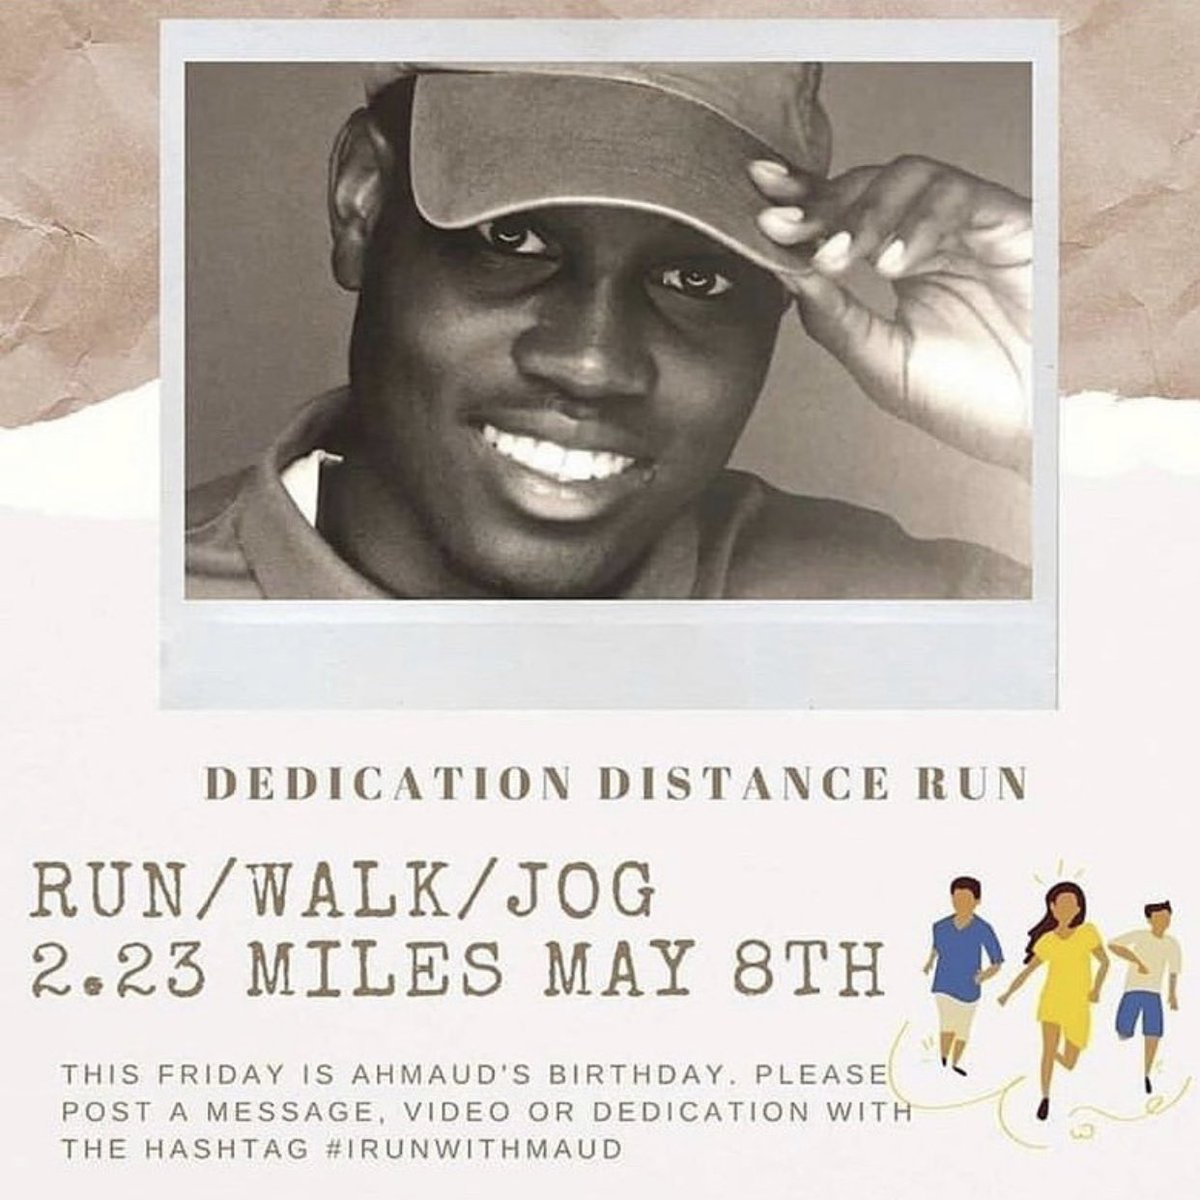 Tomorrow would have been #AhmaudArbery's 26th birthday. Run with me to honor him and raise awareness about racism and injustice in this country. #IrunwithMaud https://t.co/q6xfQwoSnq